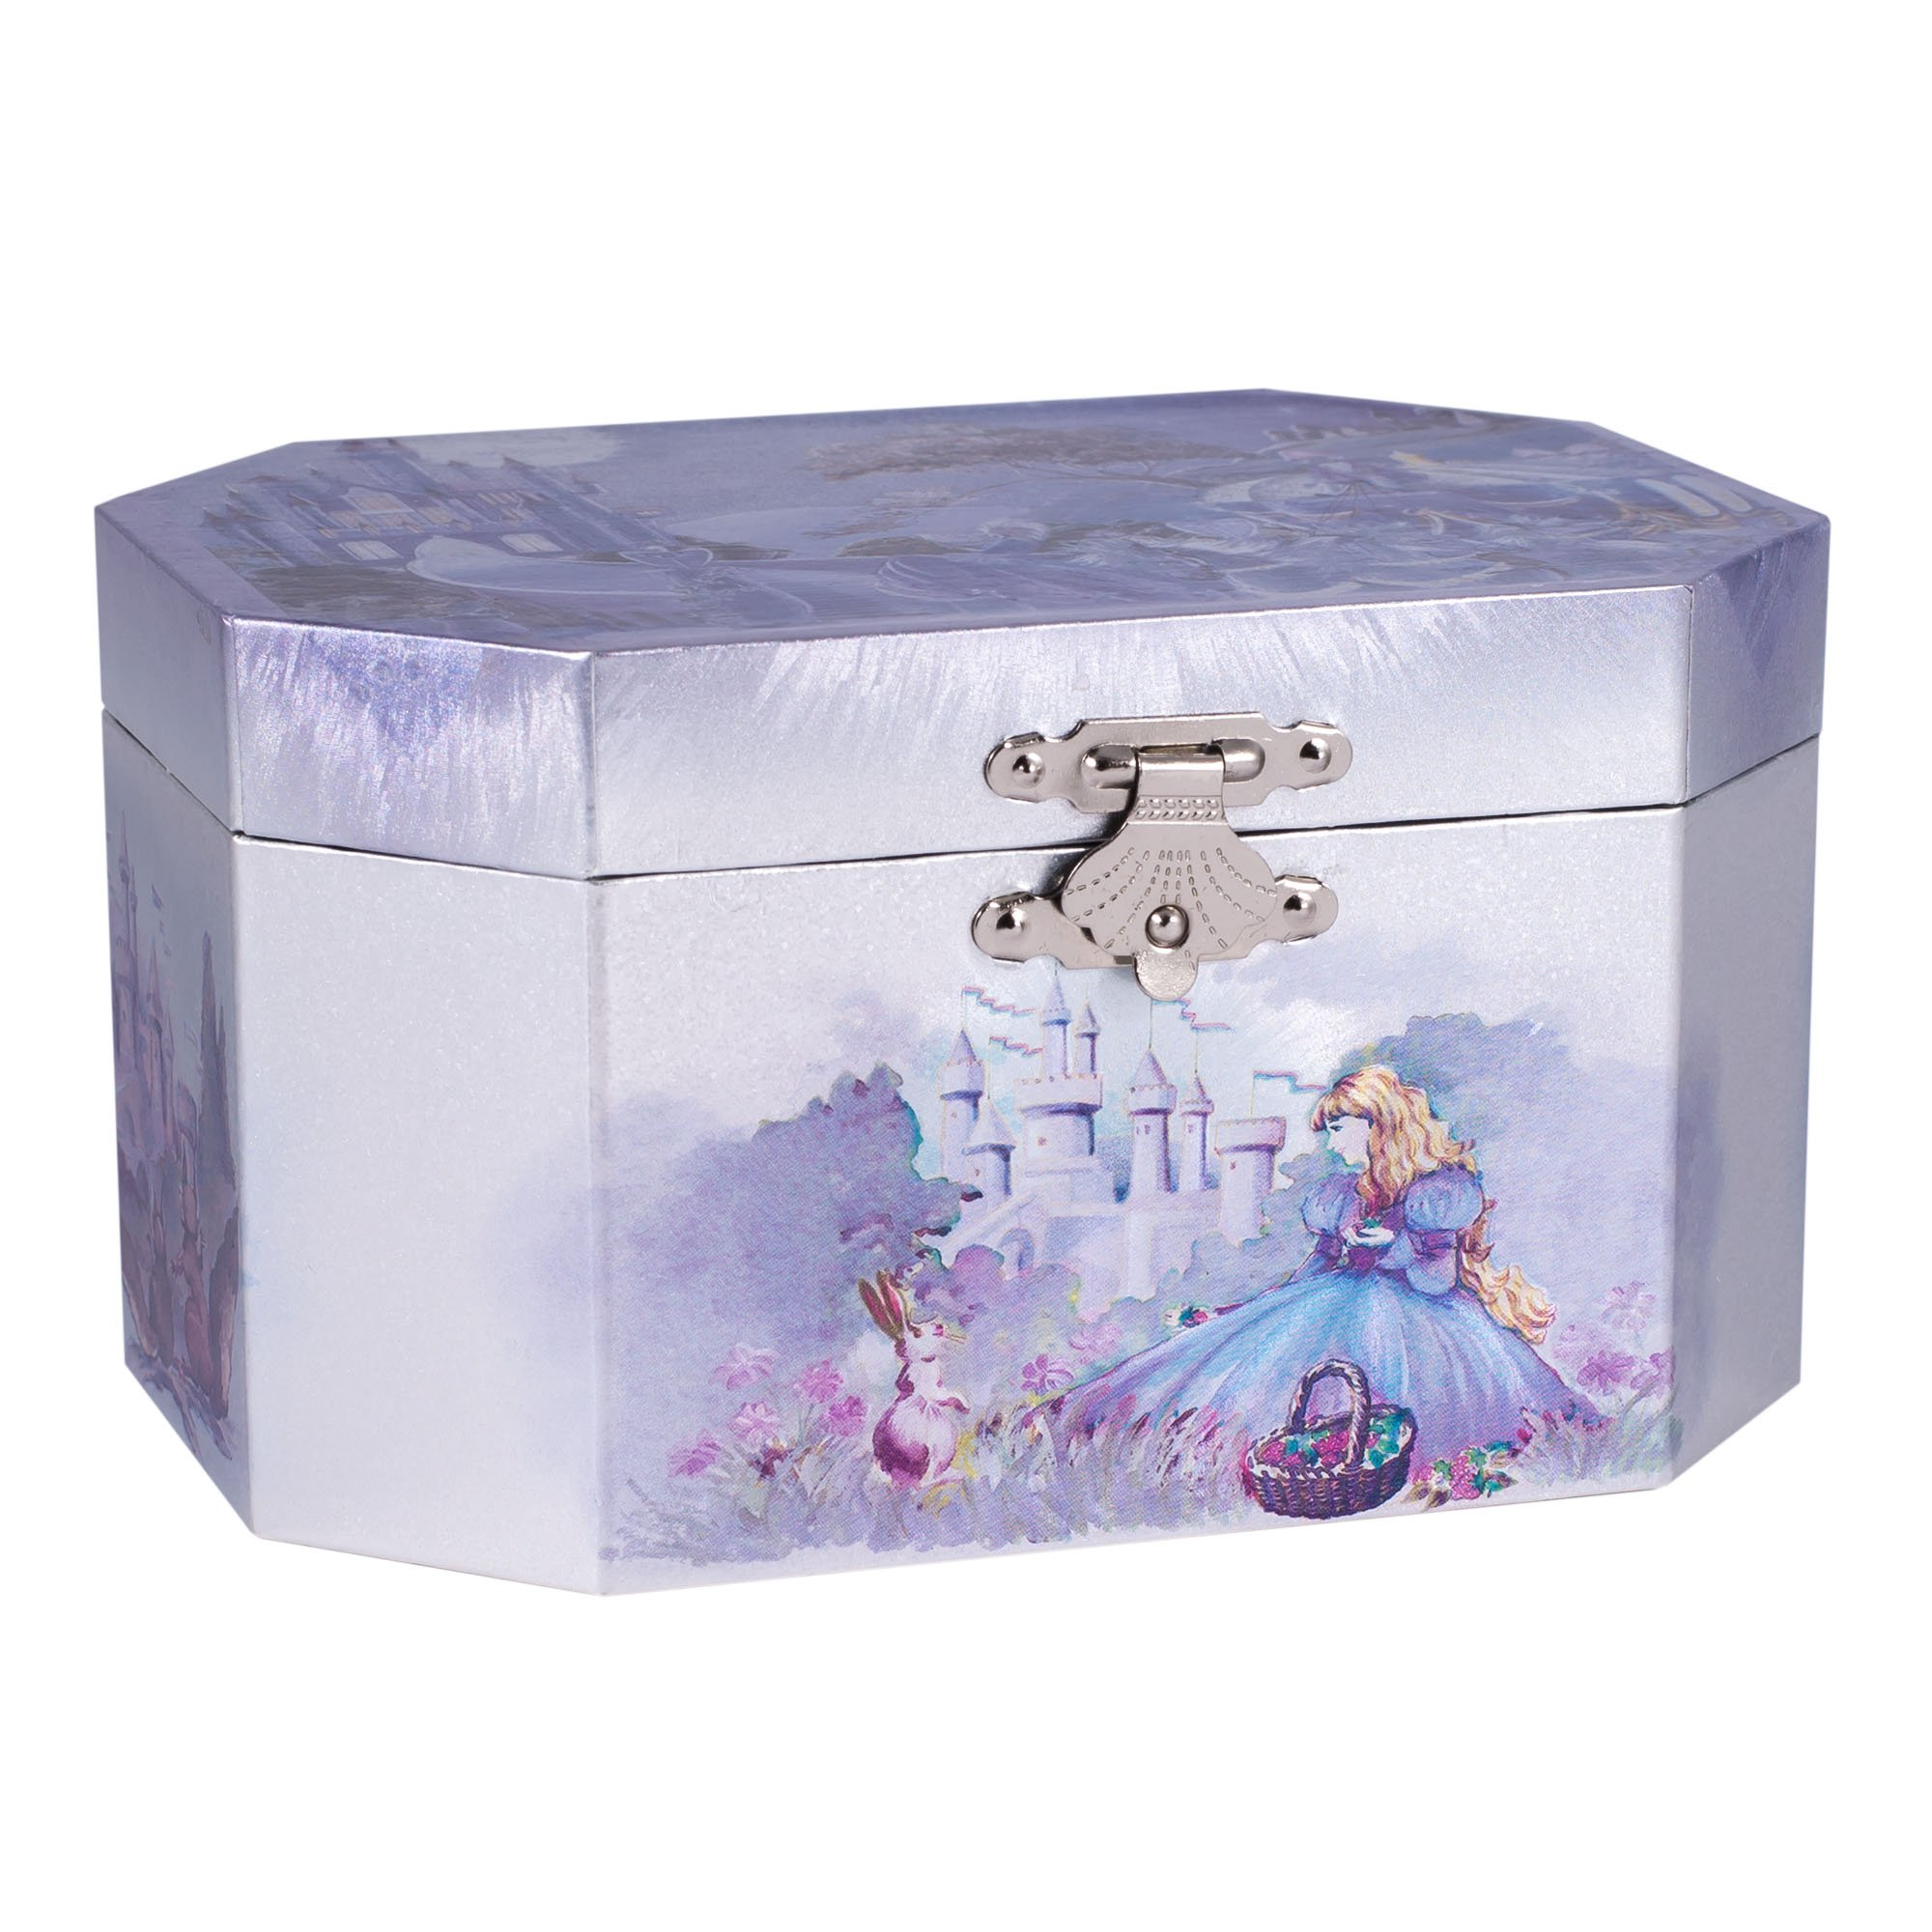 Broadway Gifts Castle Musical Music Jewelry Box with Dancing Spinning Ballerina Plays Swan Lake Tune,purple, silver,5.75x3.75x 5